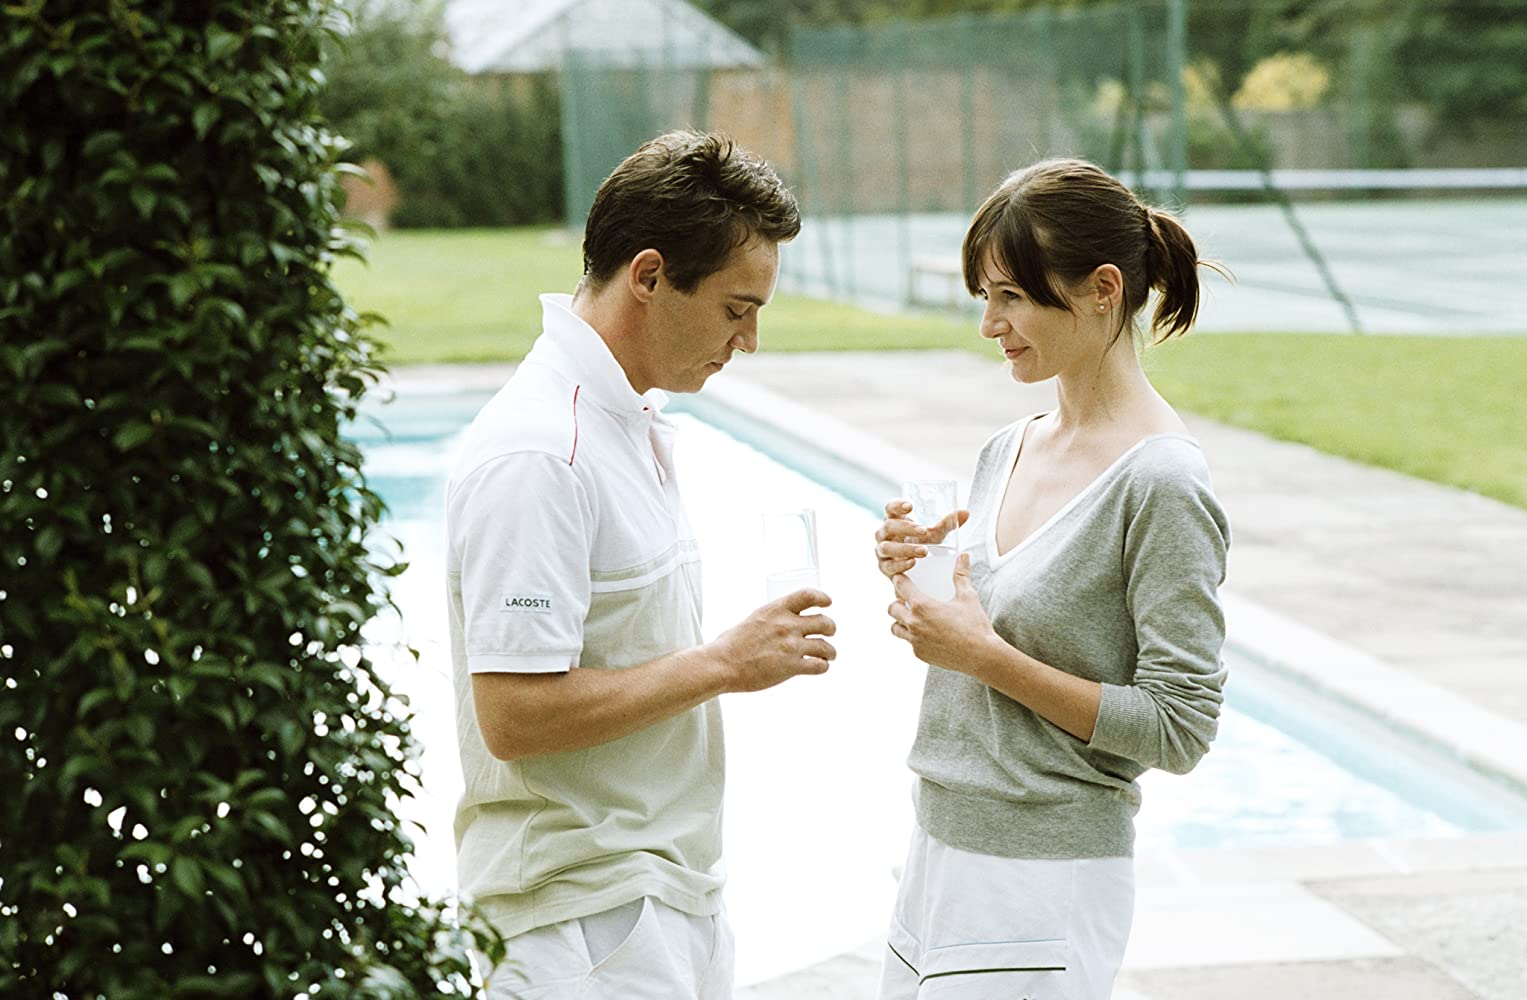 Chris Wilton (Jonathan Rhys Meyers) and fiancee Chloe Hewett (Emily Mortimer) in Match Point (2005)